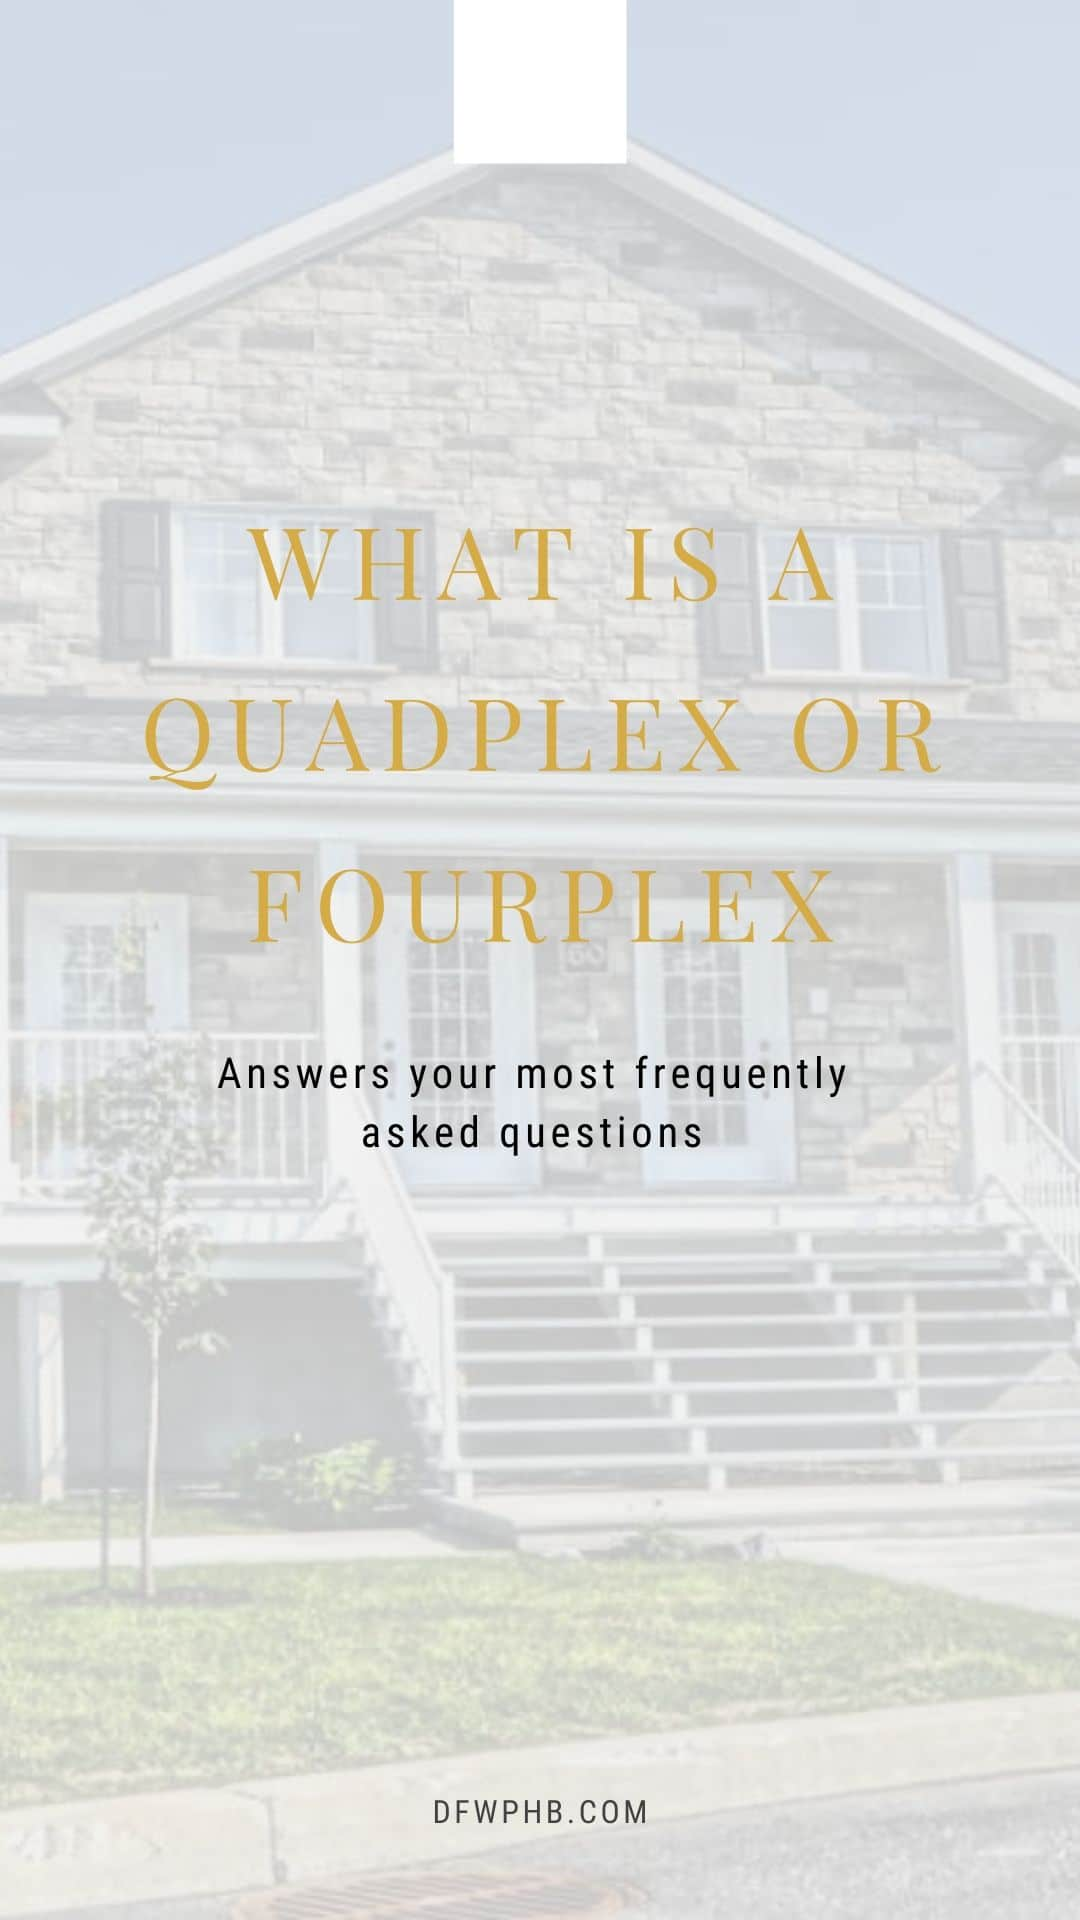 Image of a guide that discusses what is a quadplex or fourplex